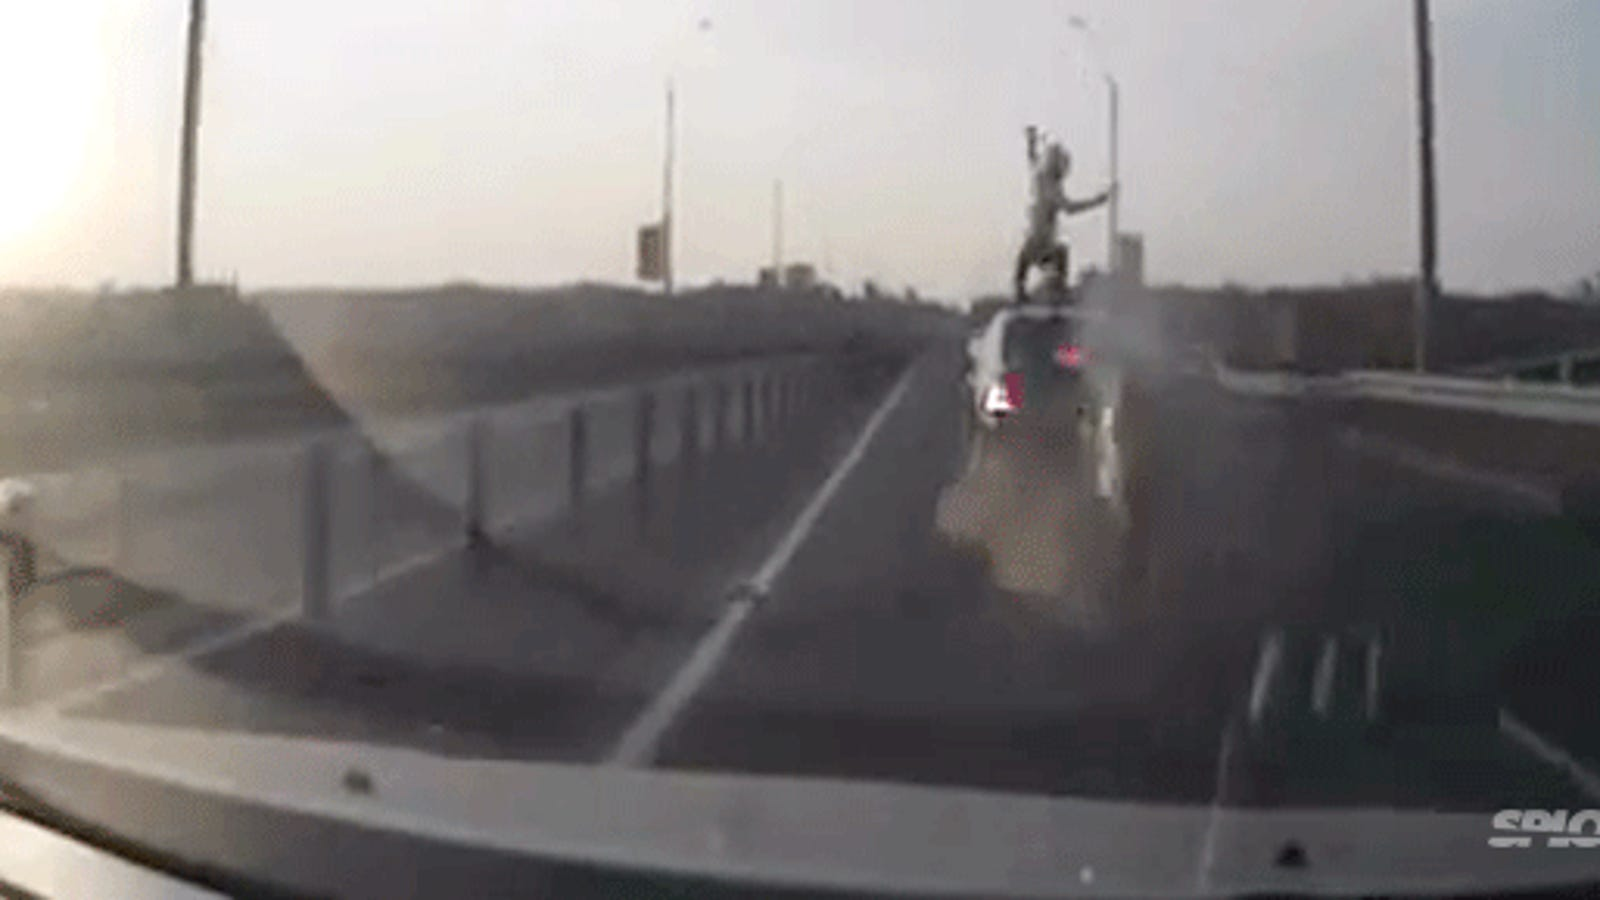 Motorcyclist crashes, flips and sticks a perfect landing on a car's roof